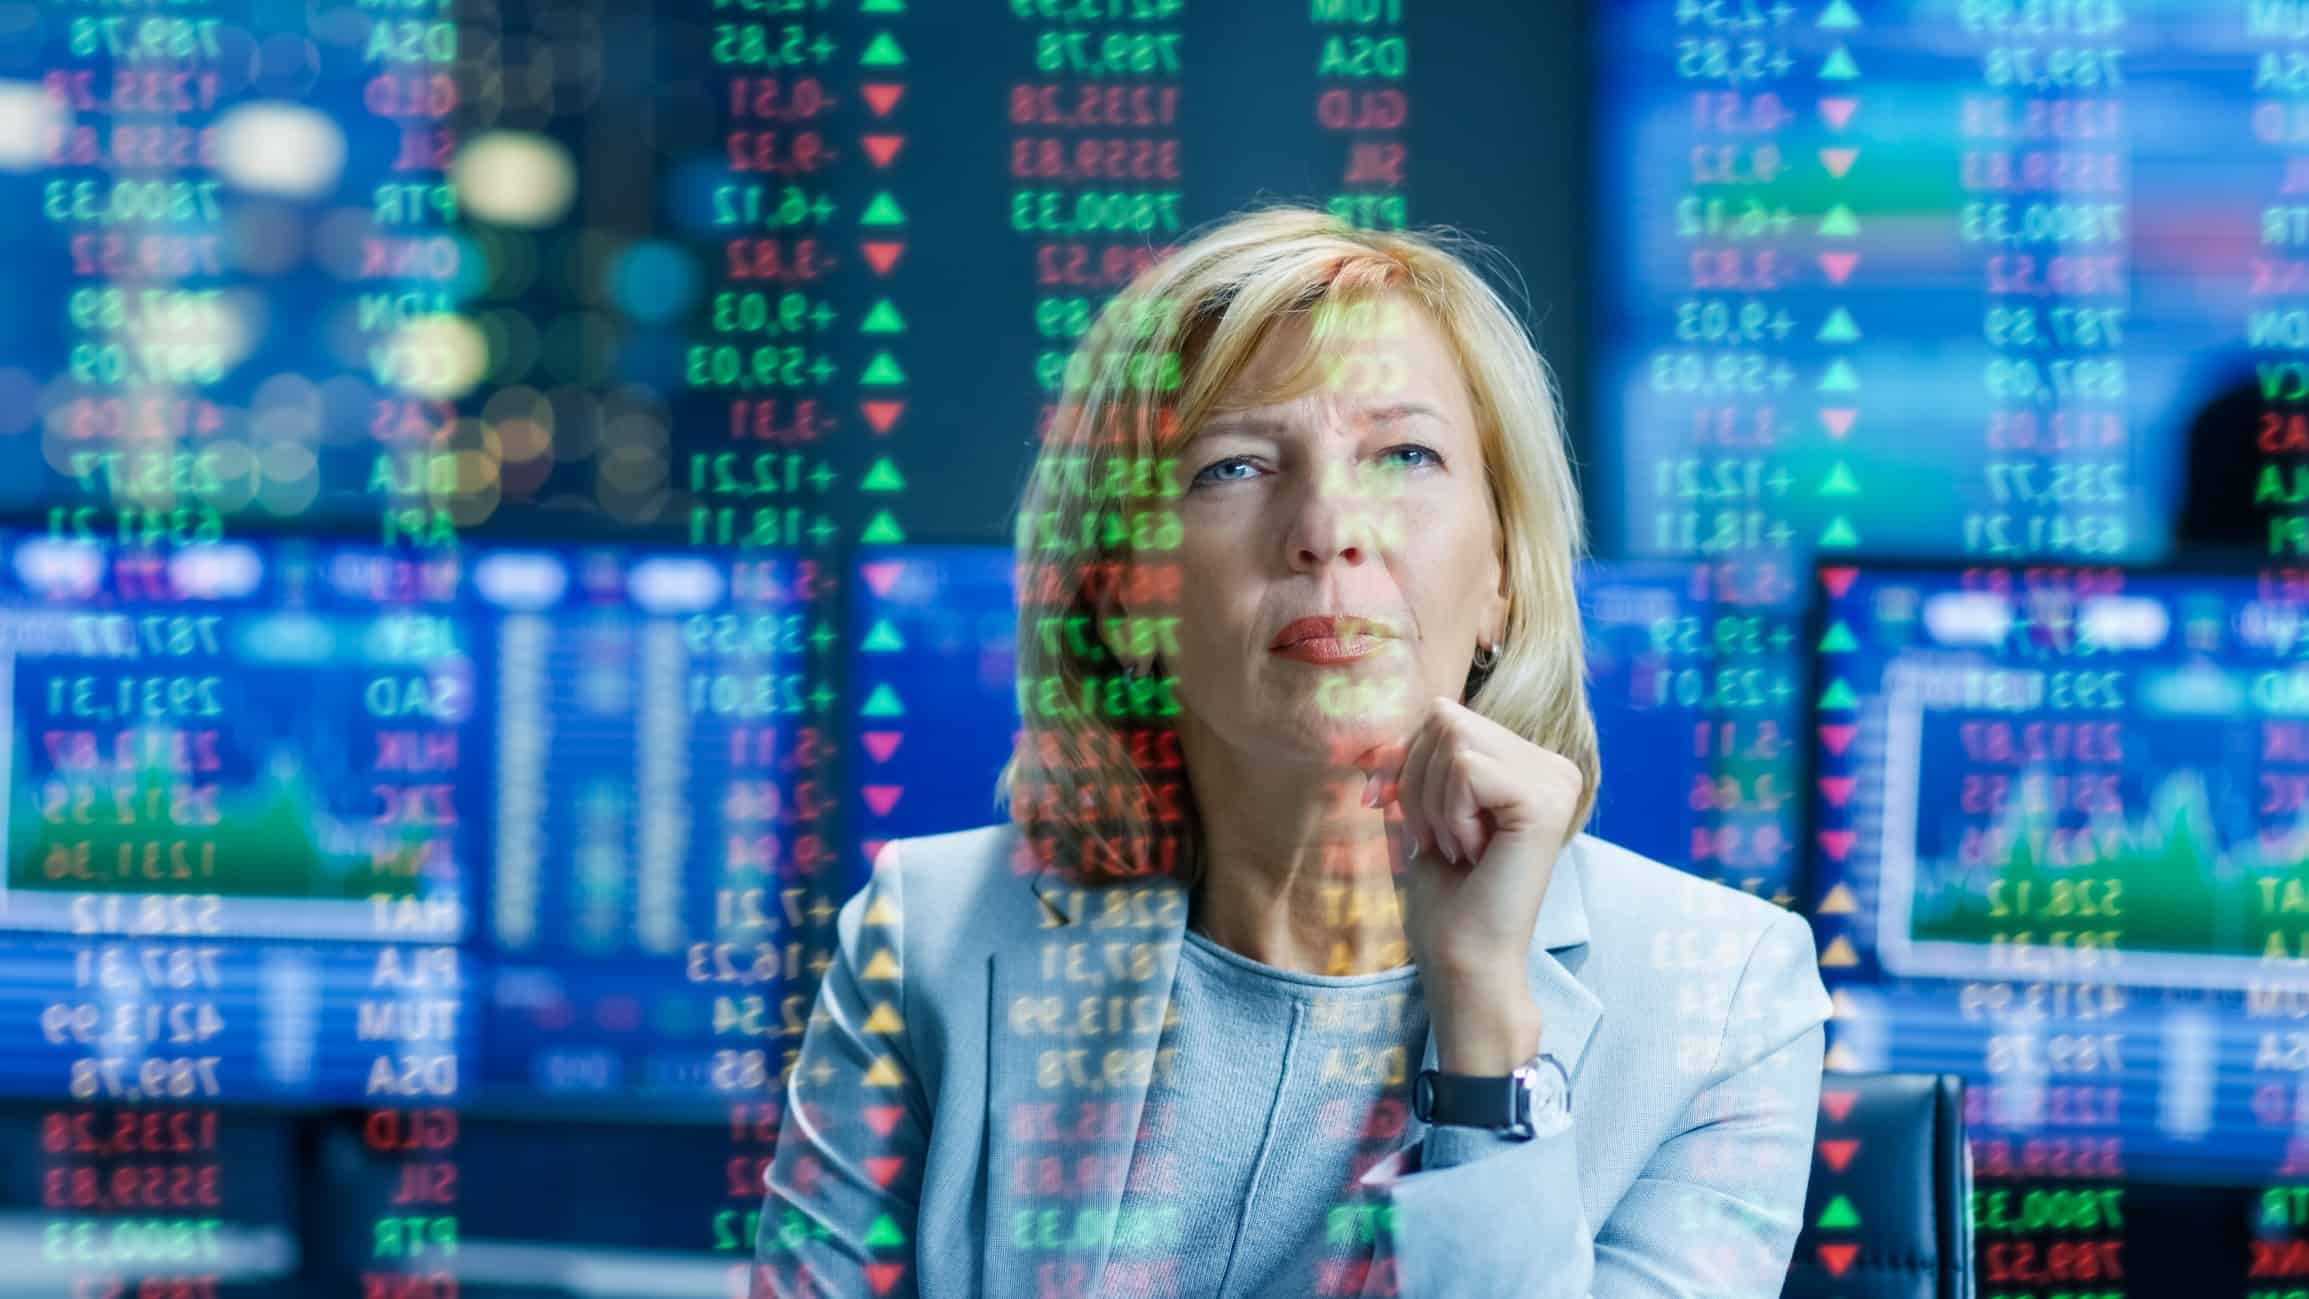 Business woman watching stocks and trends while thinking